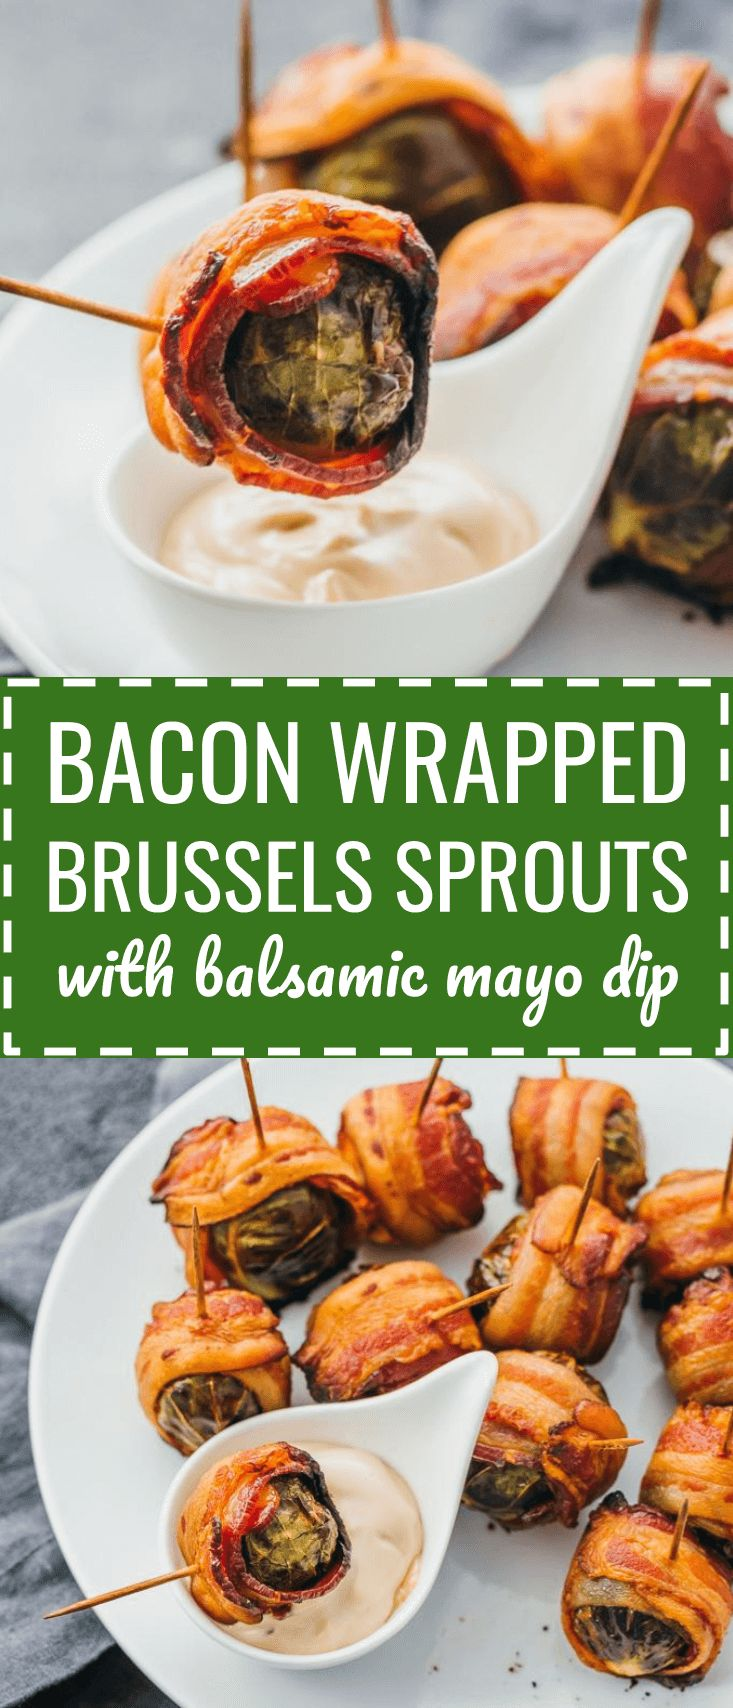 Bacon wrapped brussels sprouts with balsamic mayo dip. My favorite fall appetizers -- roasted brussels sprouts wrapped with crispy bacon slices and dipped in a balsamic vinegar and mayonnaise sauce. thanksgiving recipes / dairy free / food / roasted / oven / skewers / baked / crispy / skillet / creamy / easy / paleo / recipes / whole 30 / kabobs / gluten free / thanksgiving sides / foods / balsamic vinegar / dinners / keto / low carb / healthy / induction / meals / recipes #keto...